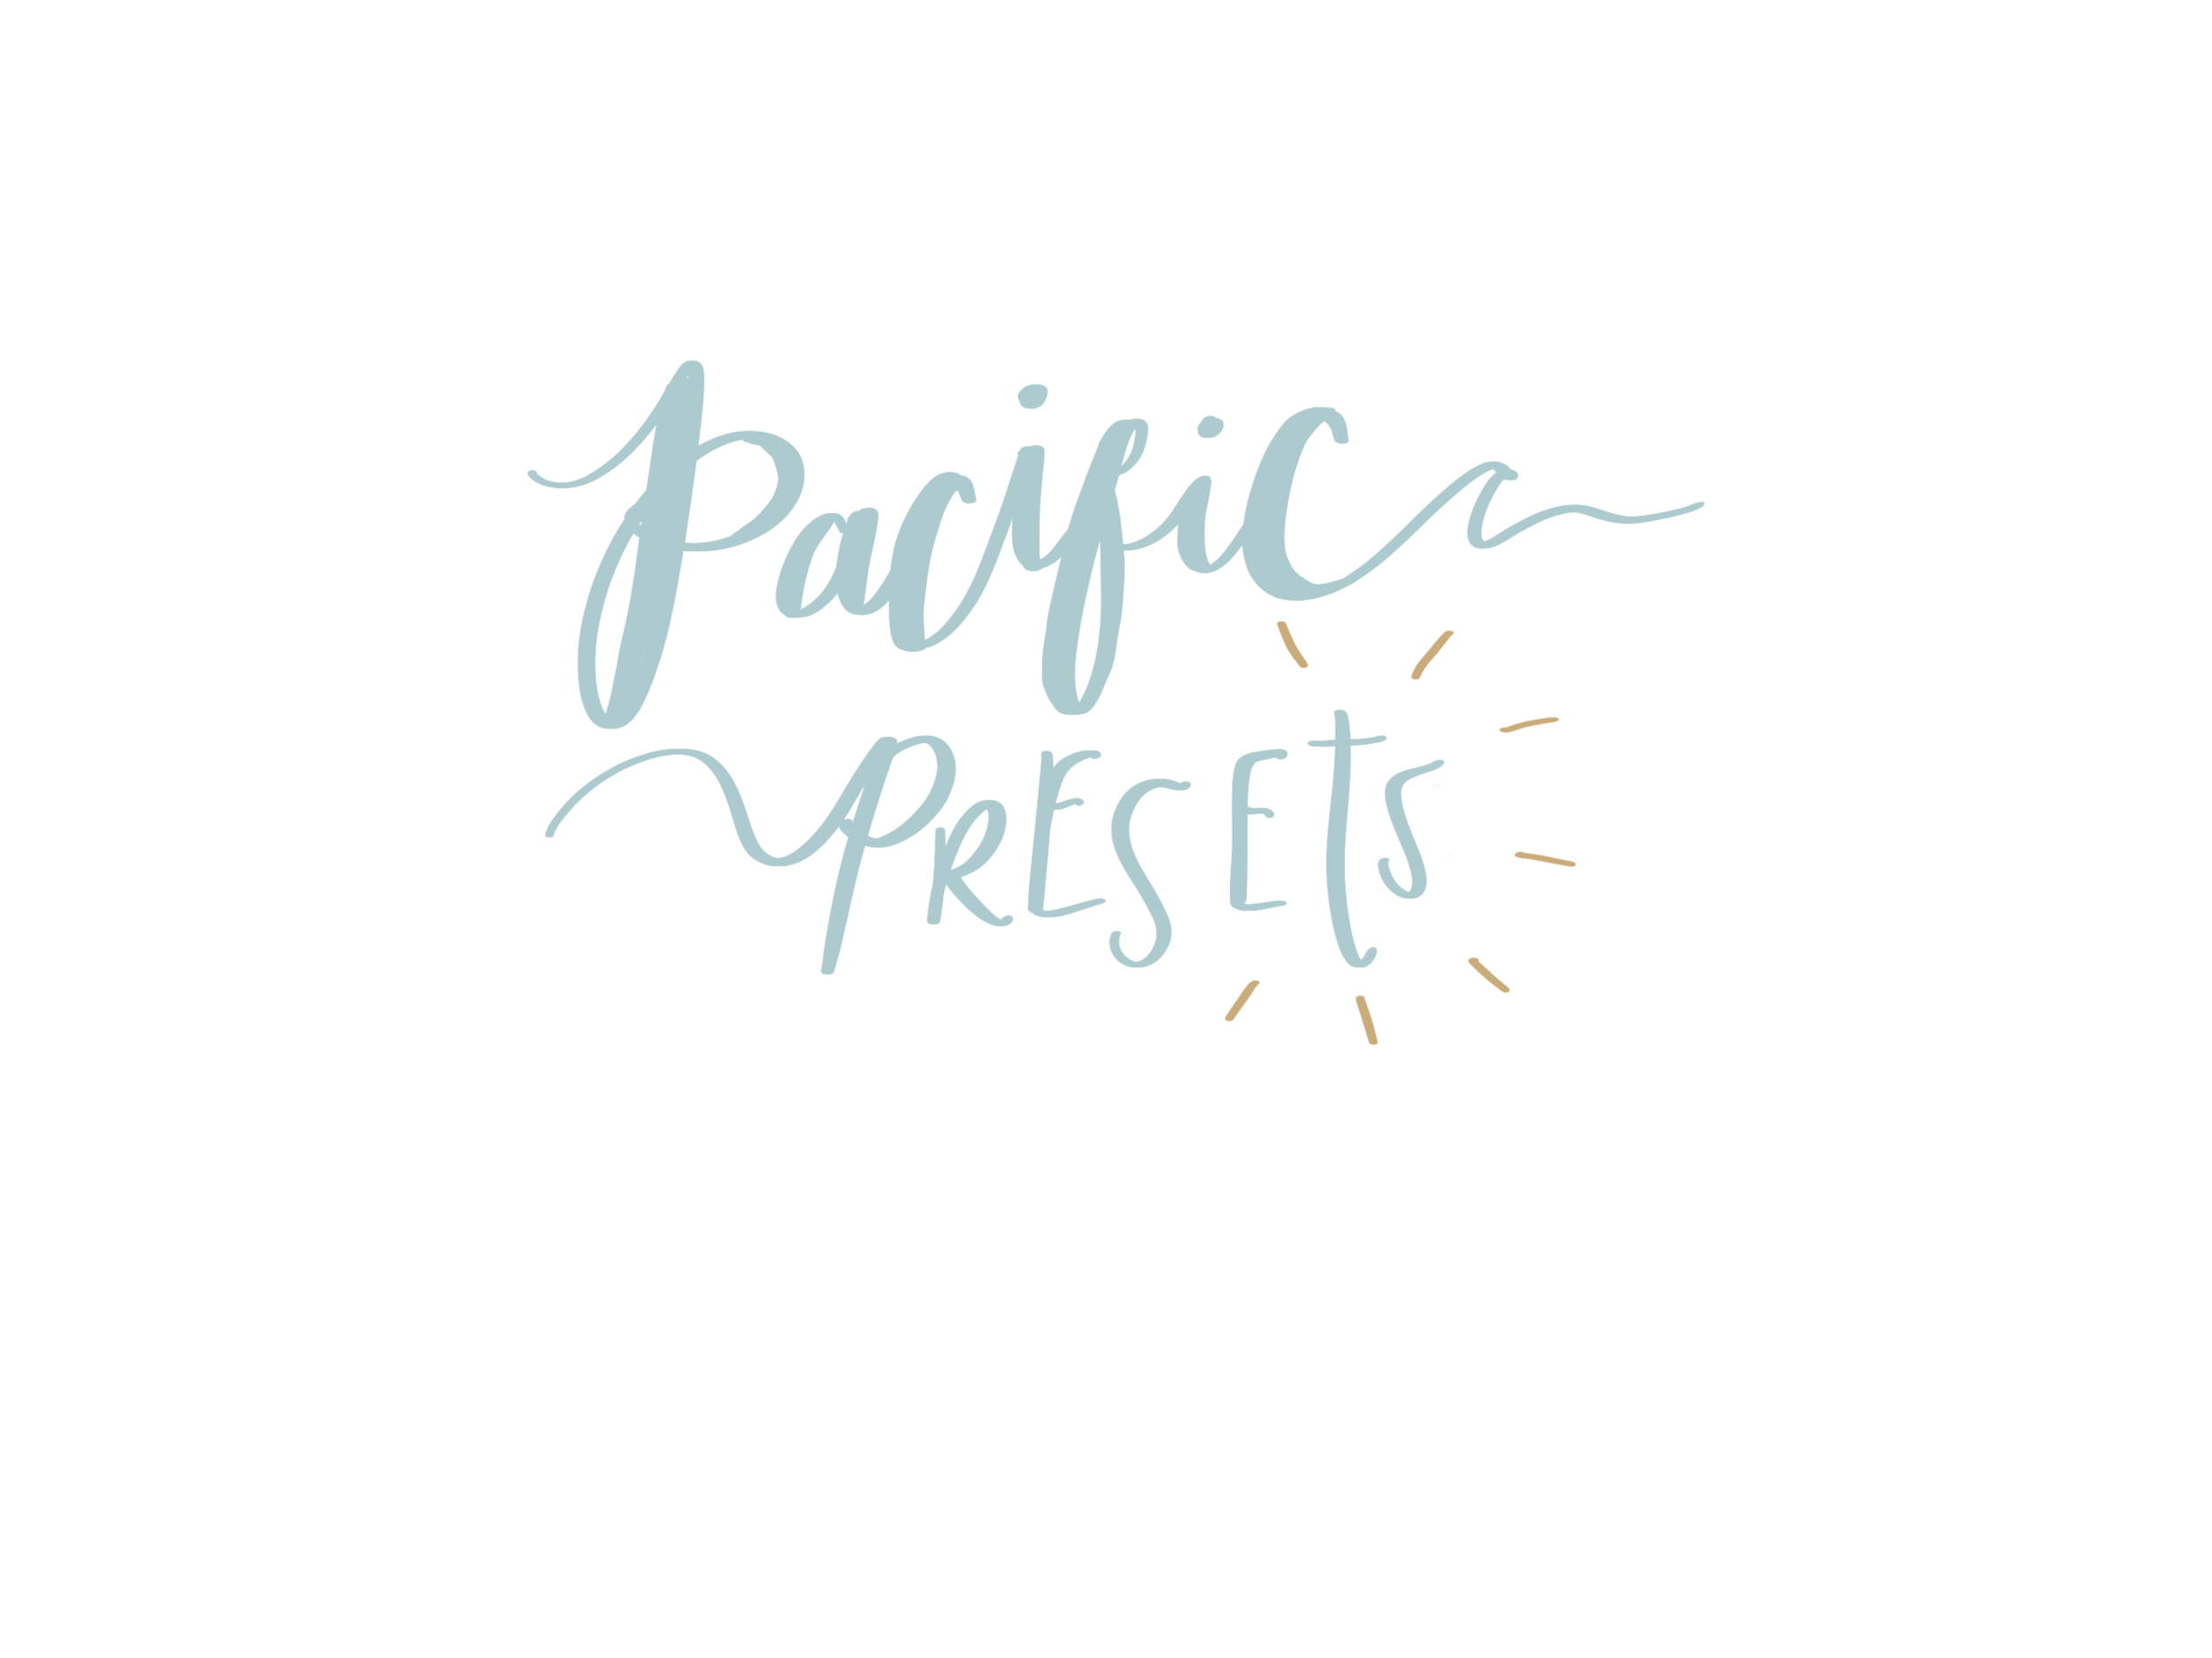 Pacific Presets